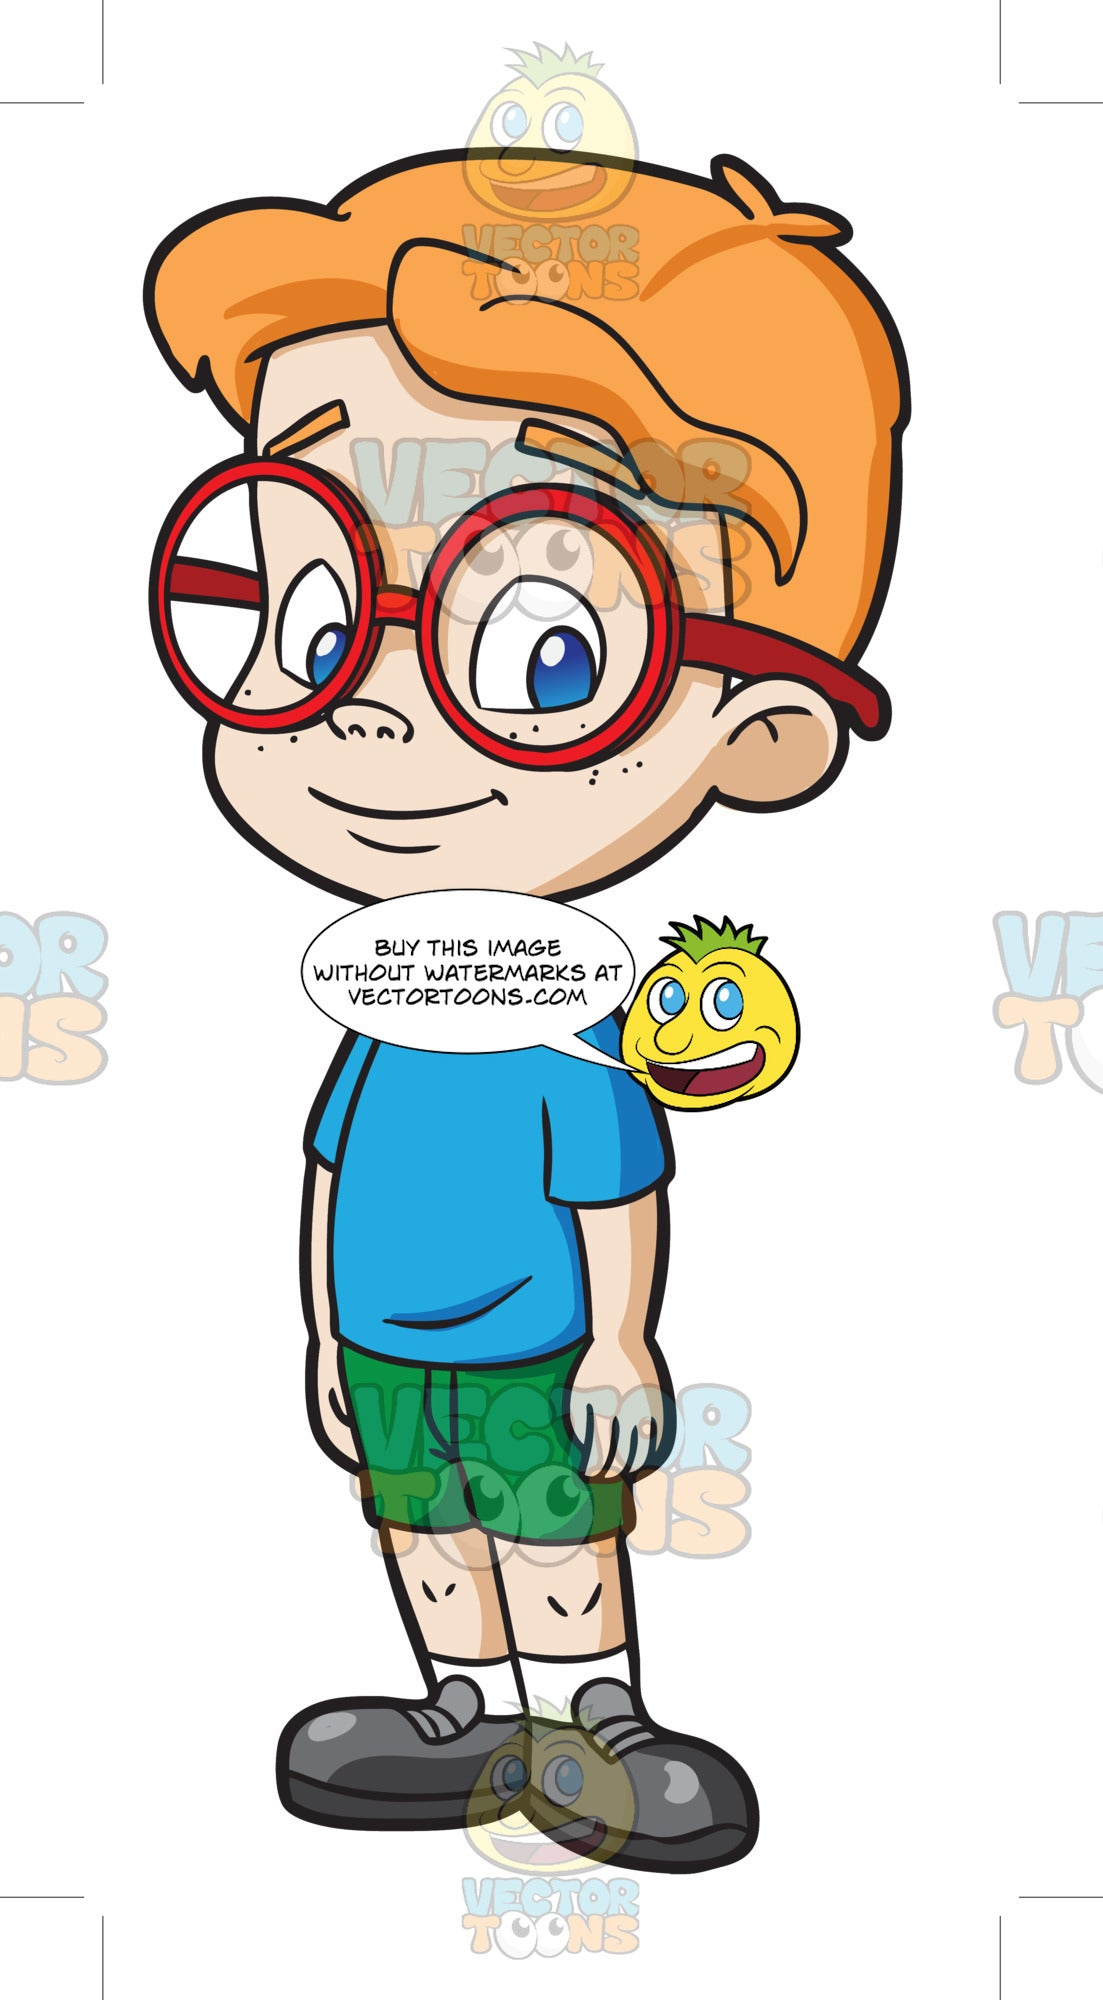 A male kindergarten student looking nerdy and smart clipart cartoons by vectortoons